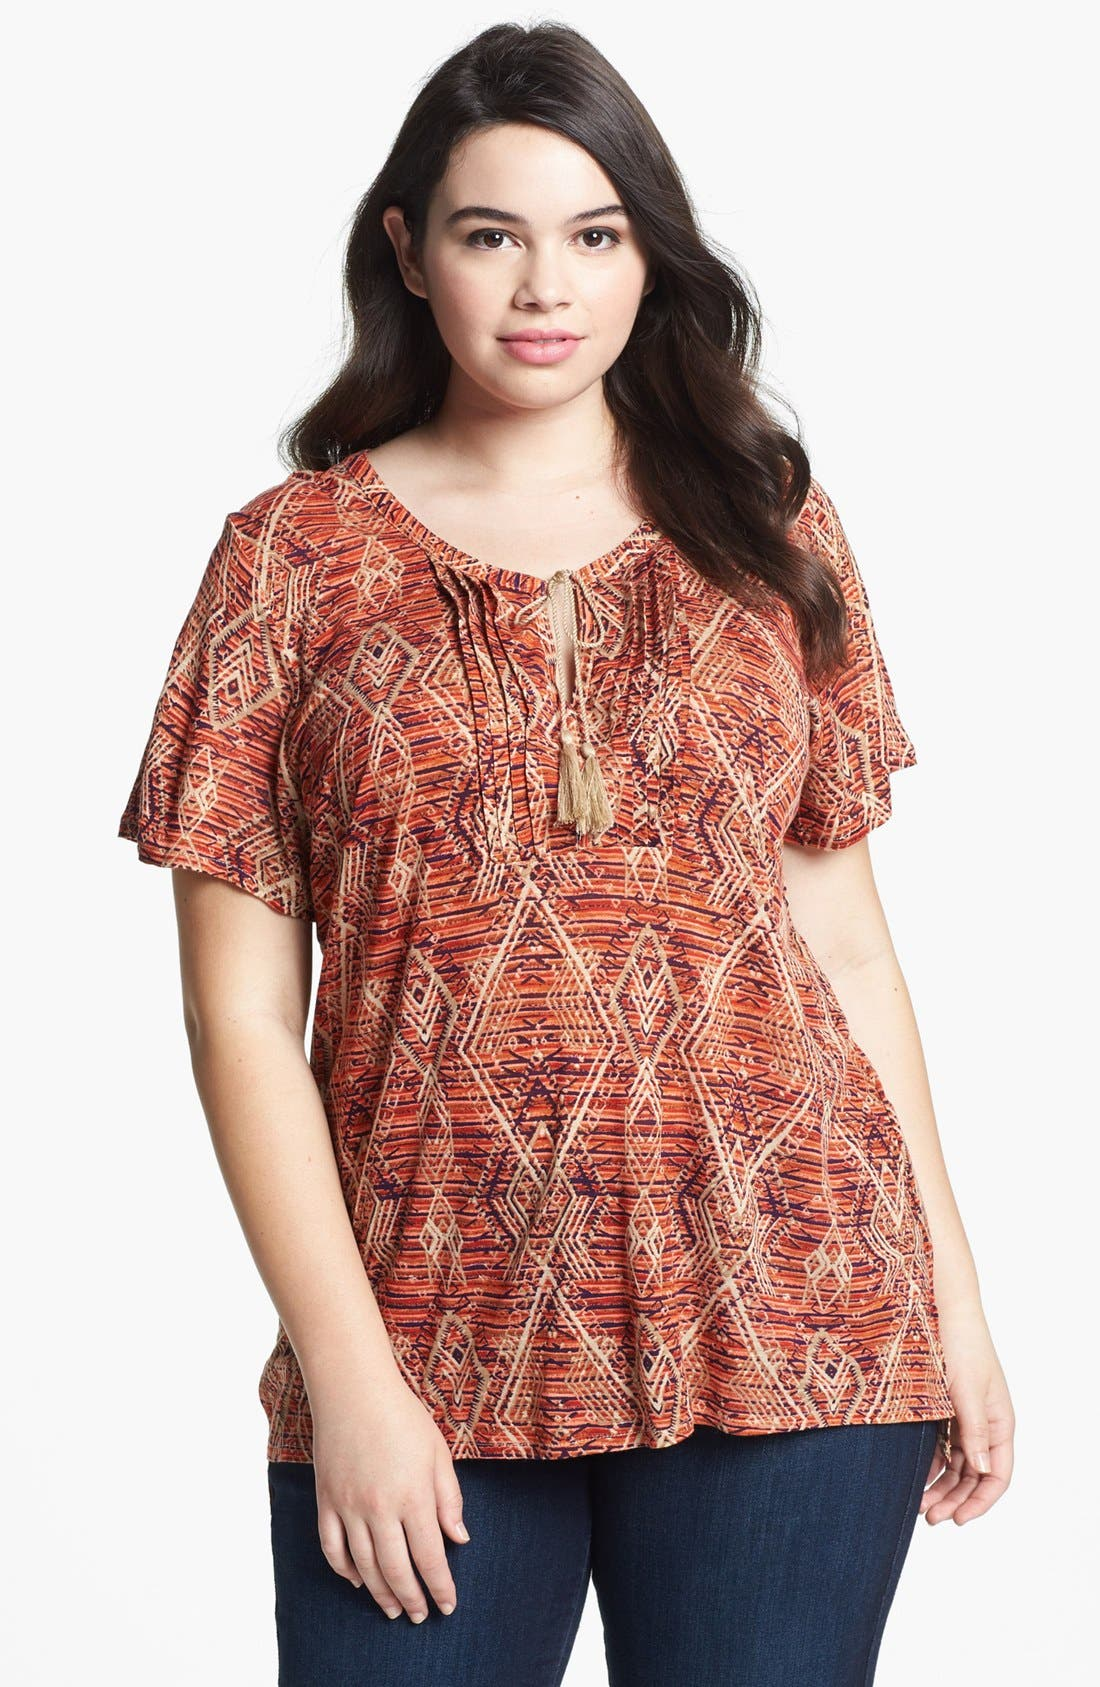 Main Image - Lucky Brand 'Aztec' Print Top (Plus)